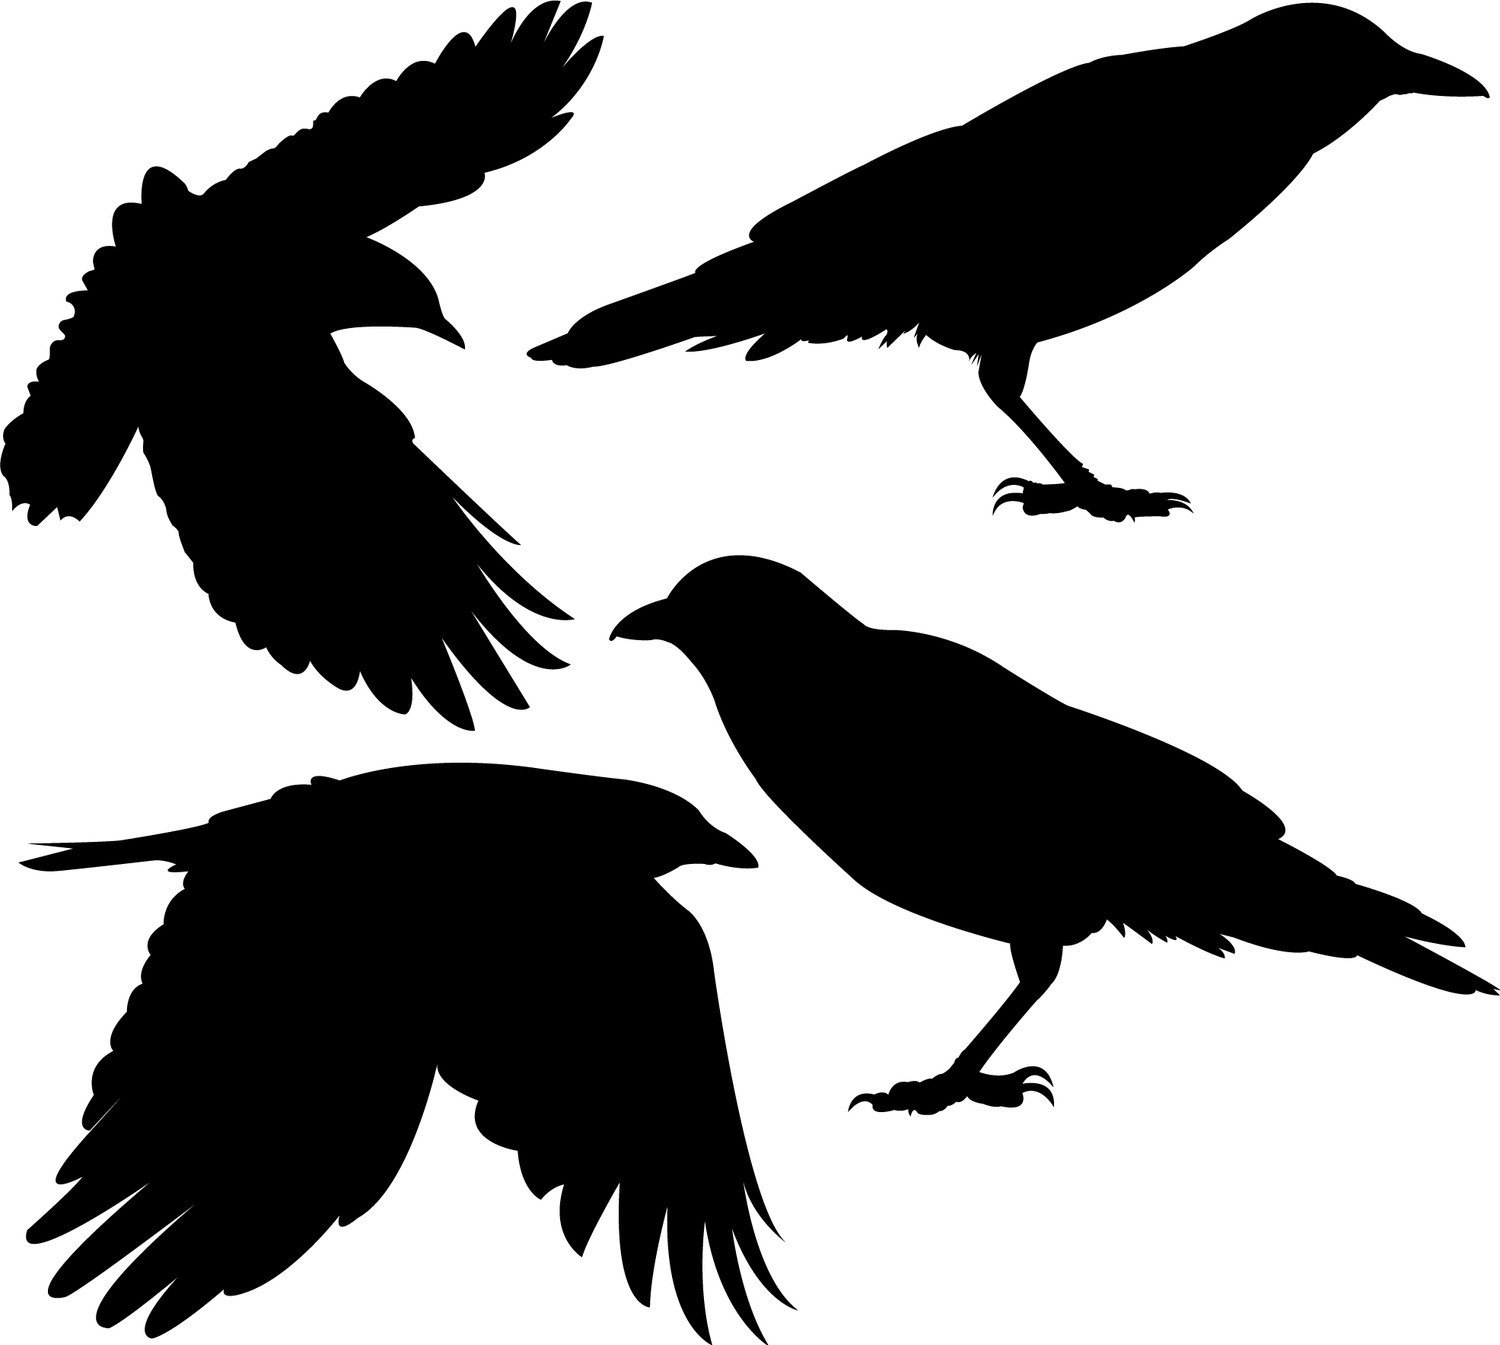 crow silhouette, flock four crows vinyl wall decals wilsongraphics #27618